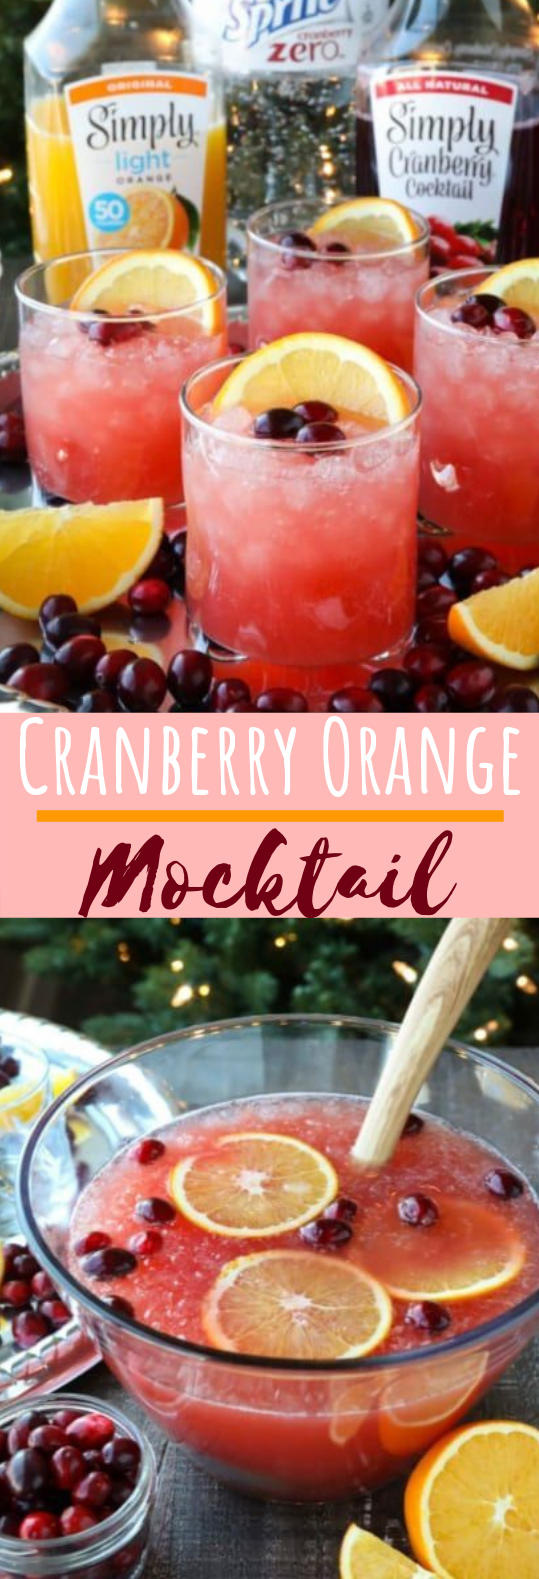 Cranberry Orange Mocktail #drinks #cocktails